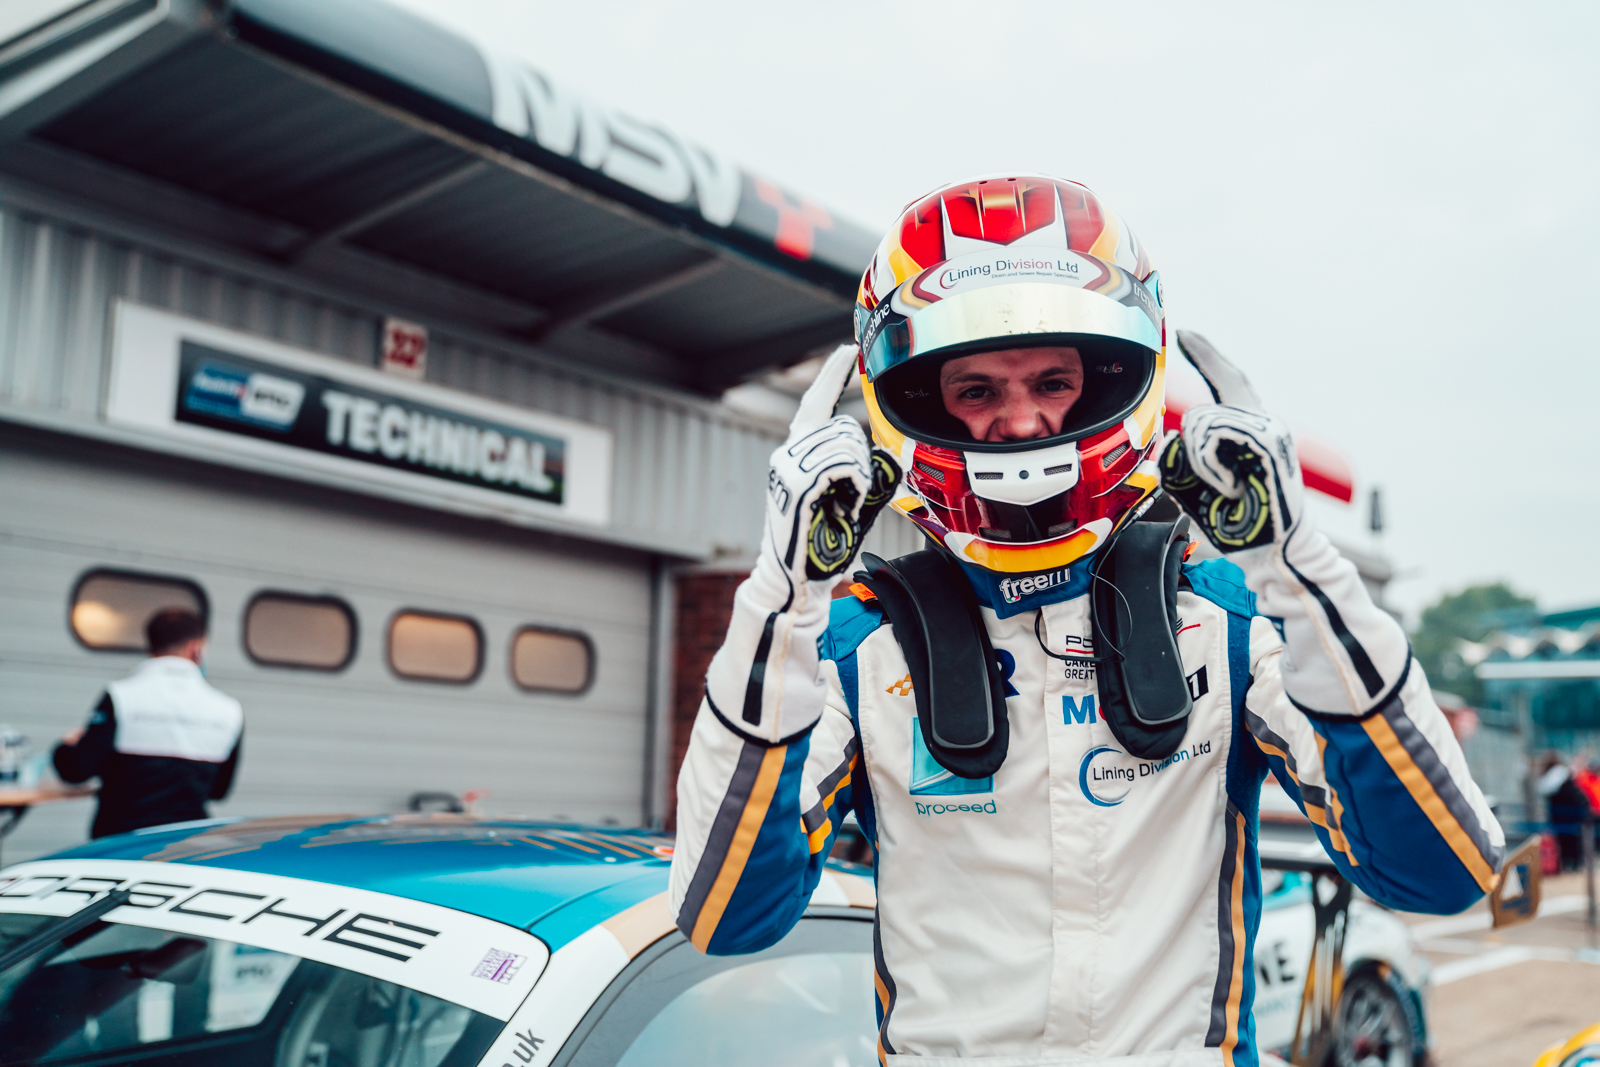 Richardson Racing secures stunning Carrera Cup win at Brands Hatch